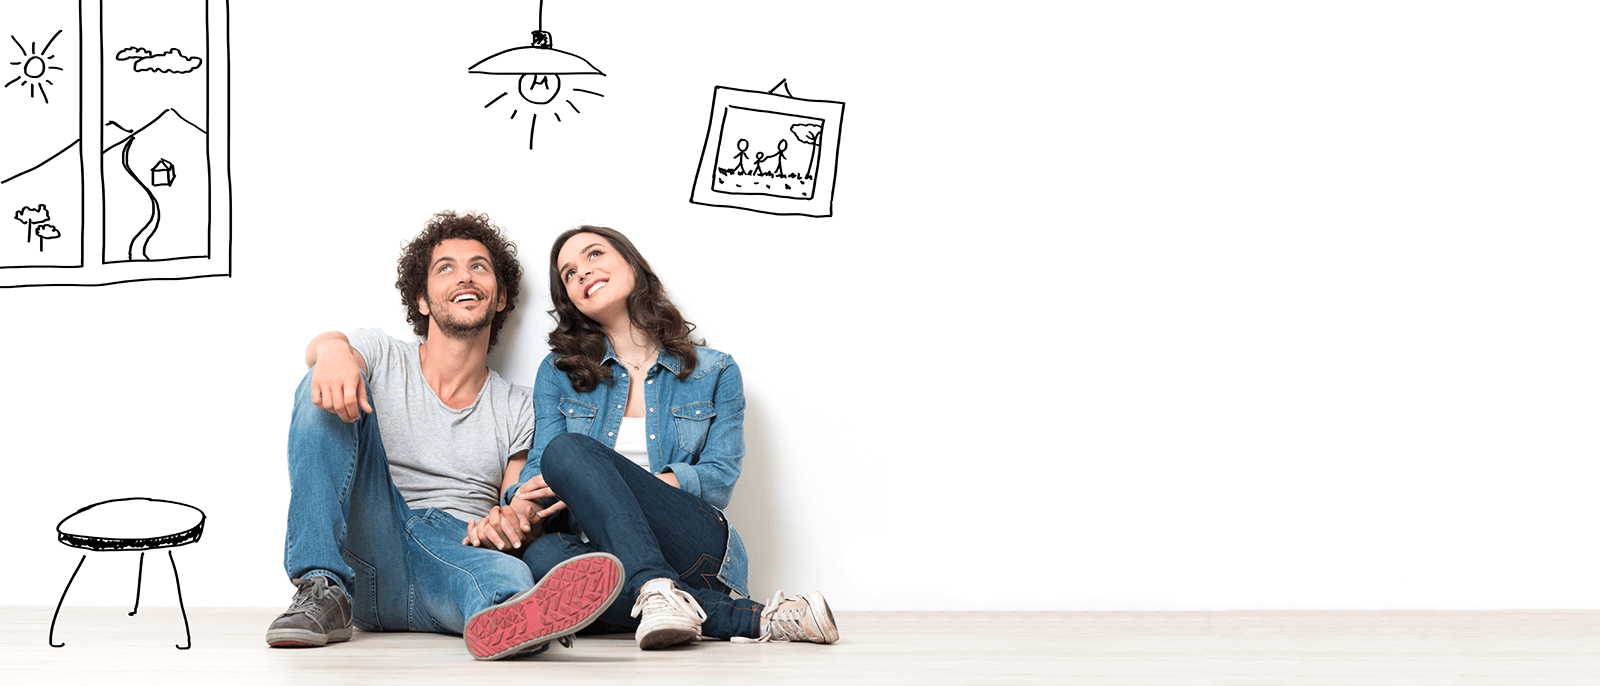 Young couple looking for a personal loan to cover moving expenses